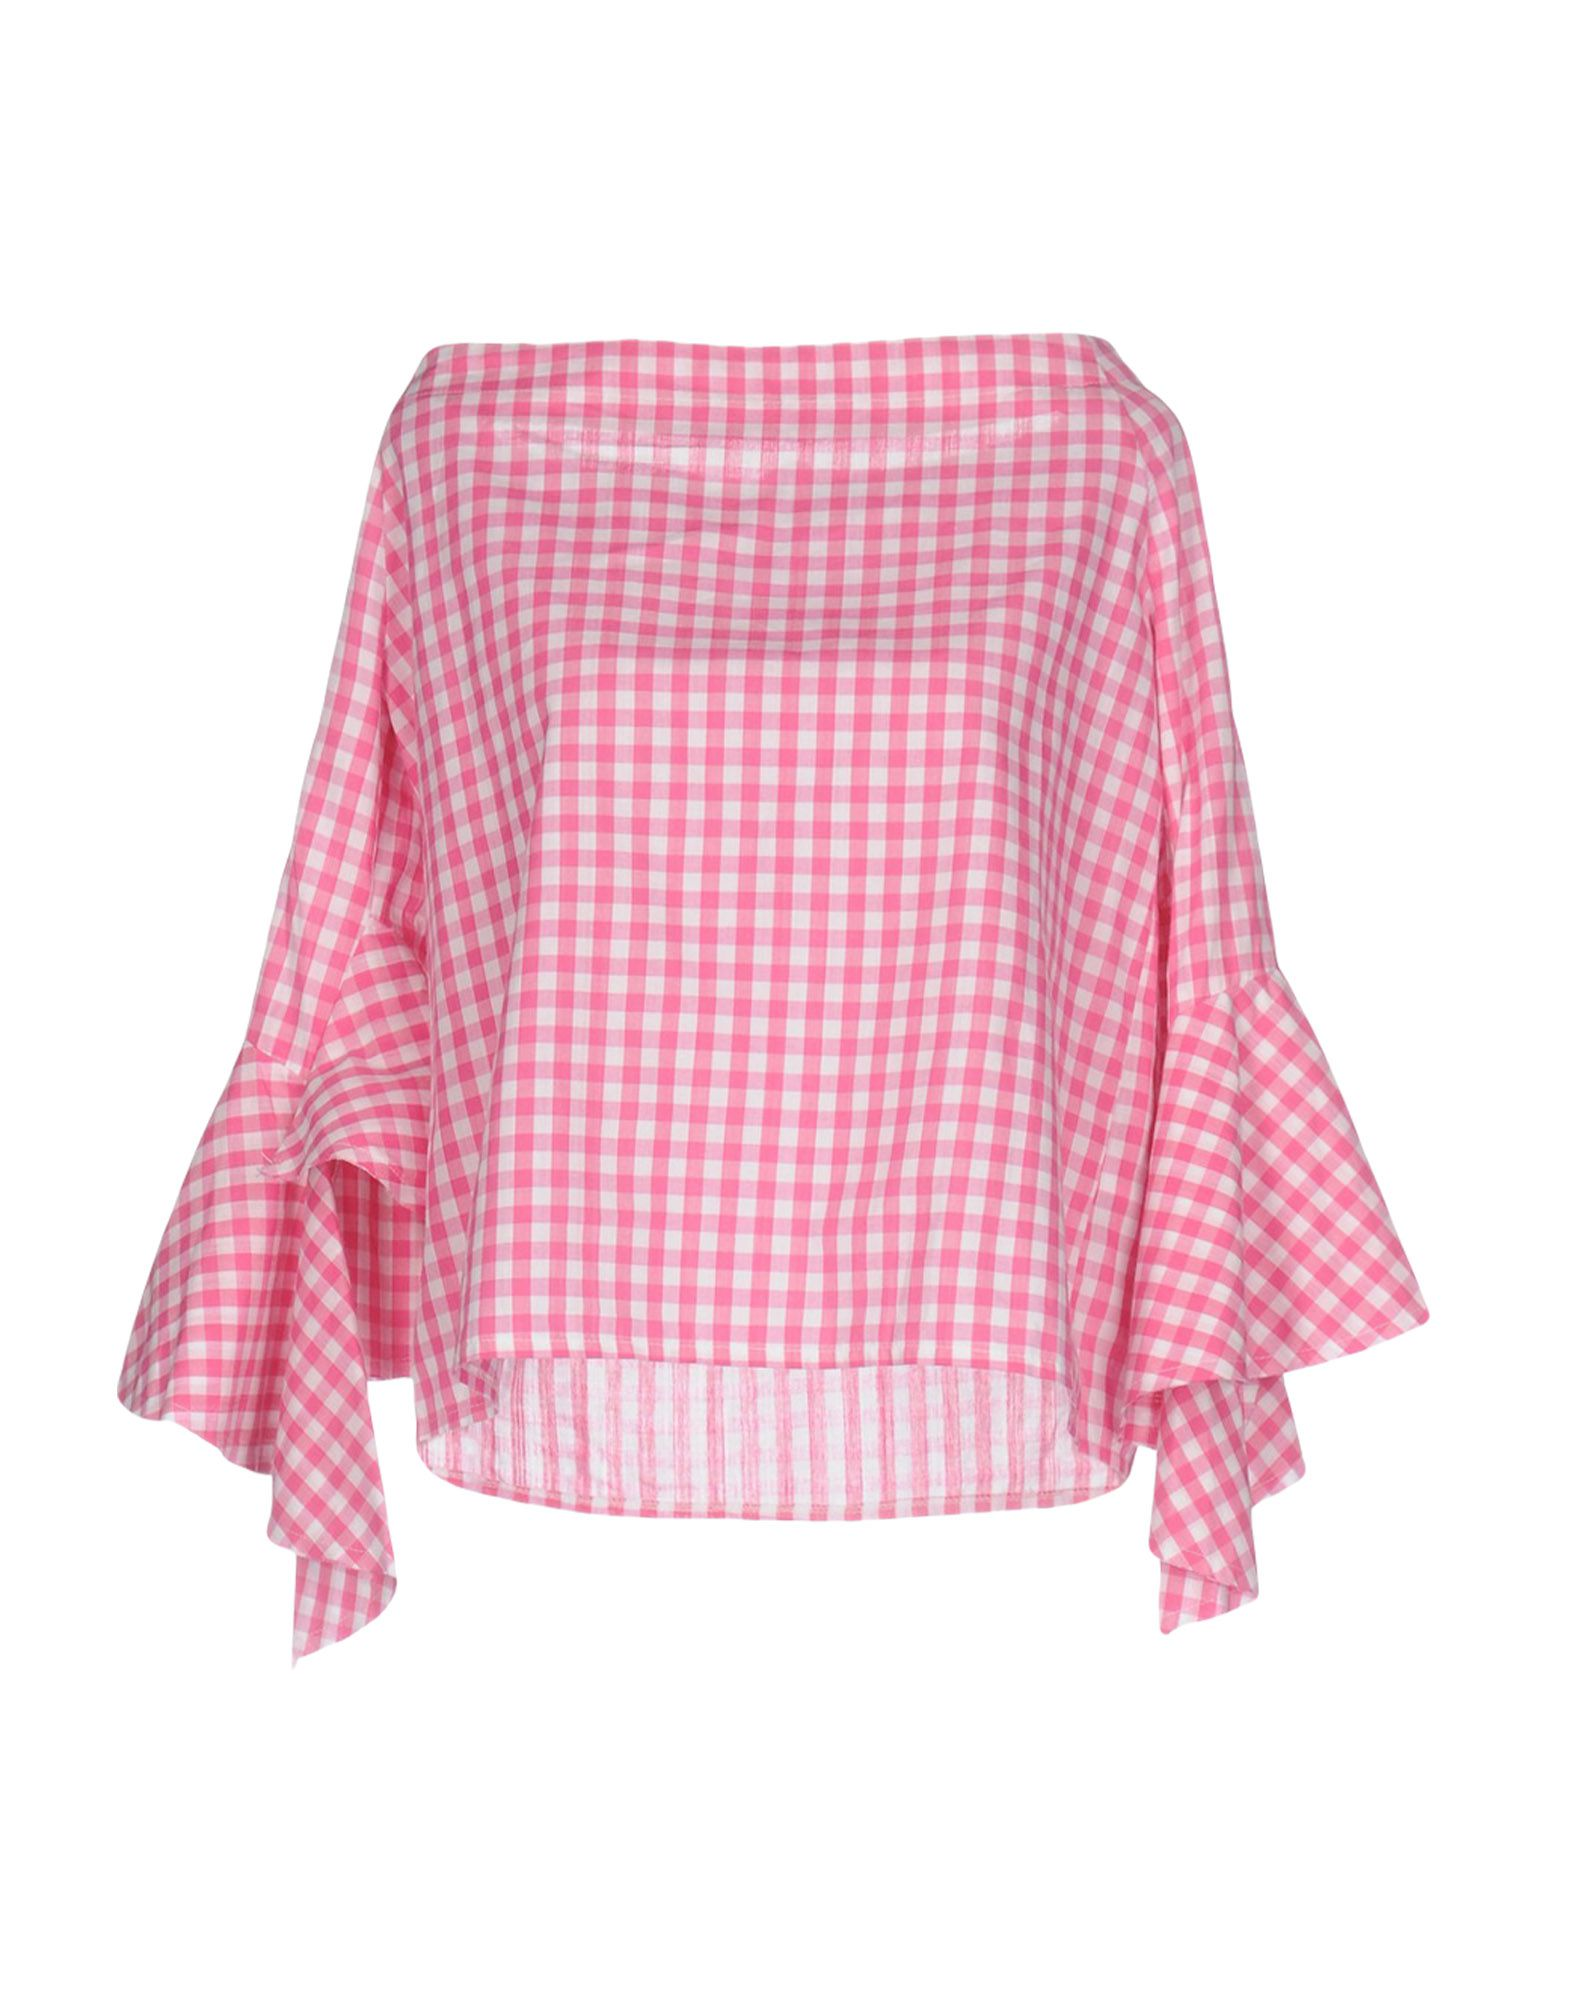 TPN Blouse in Pink